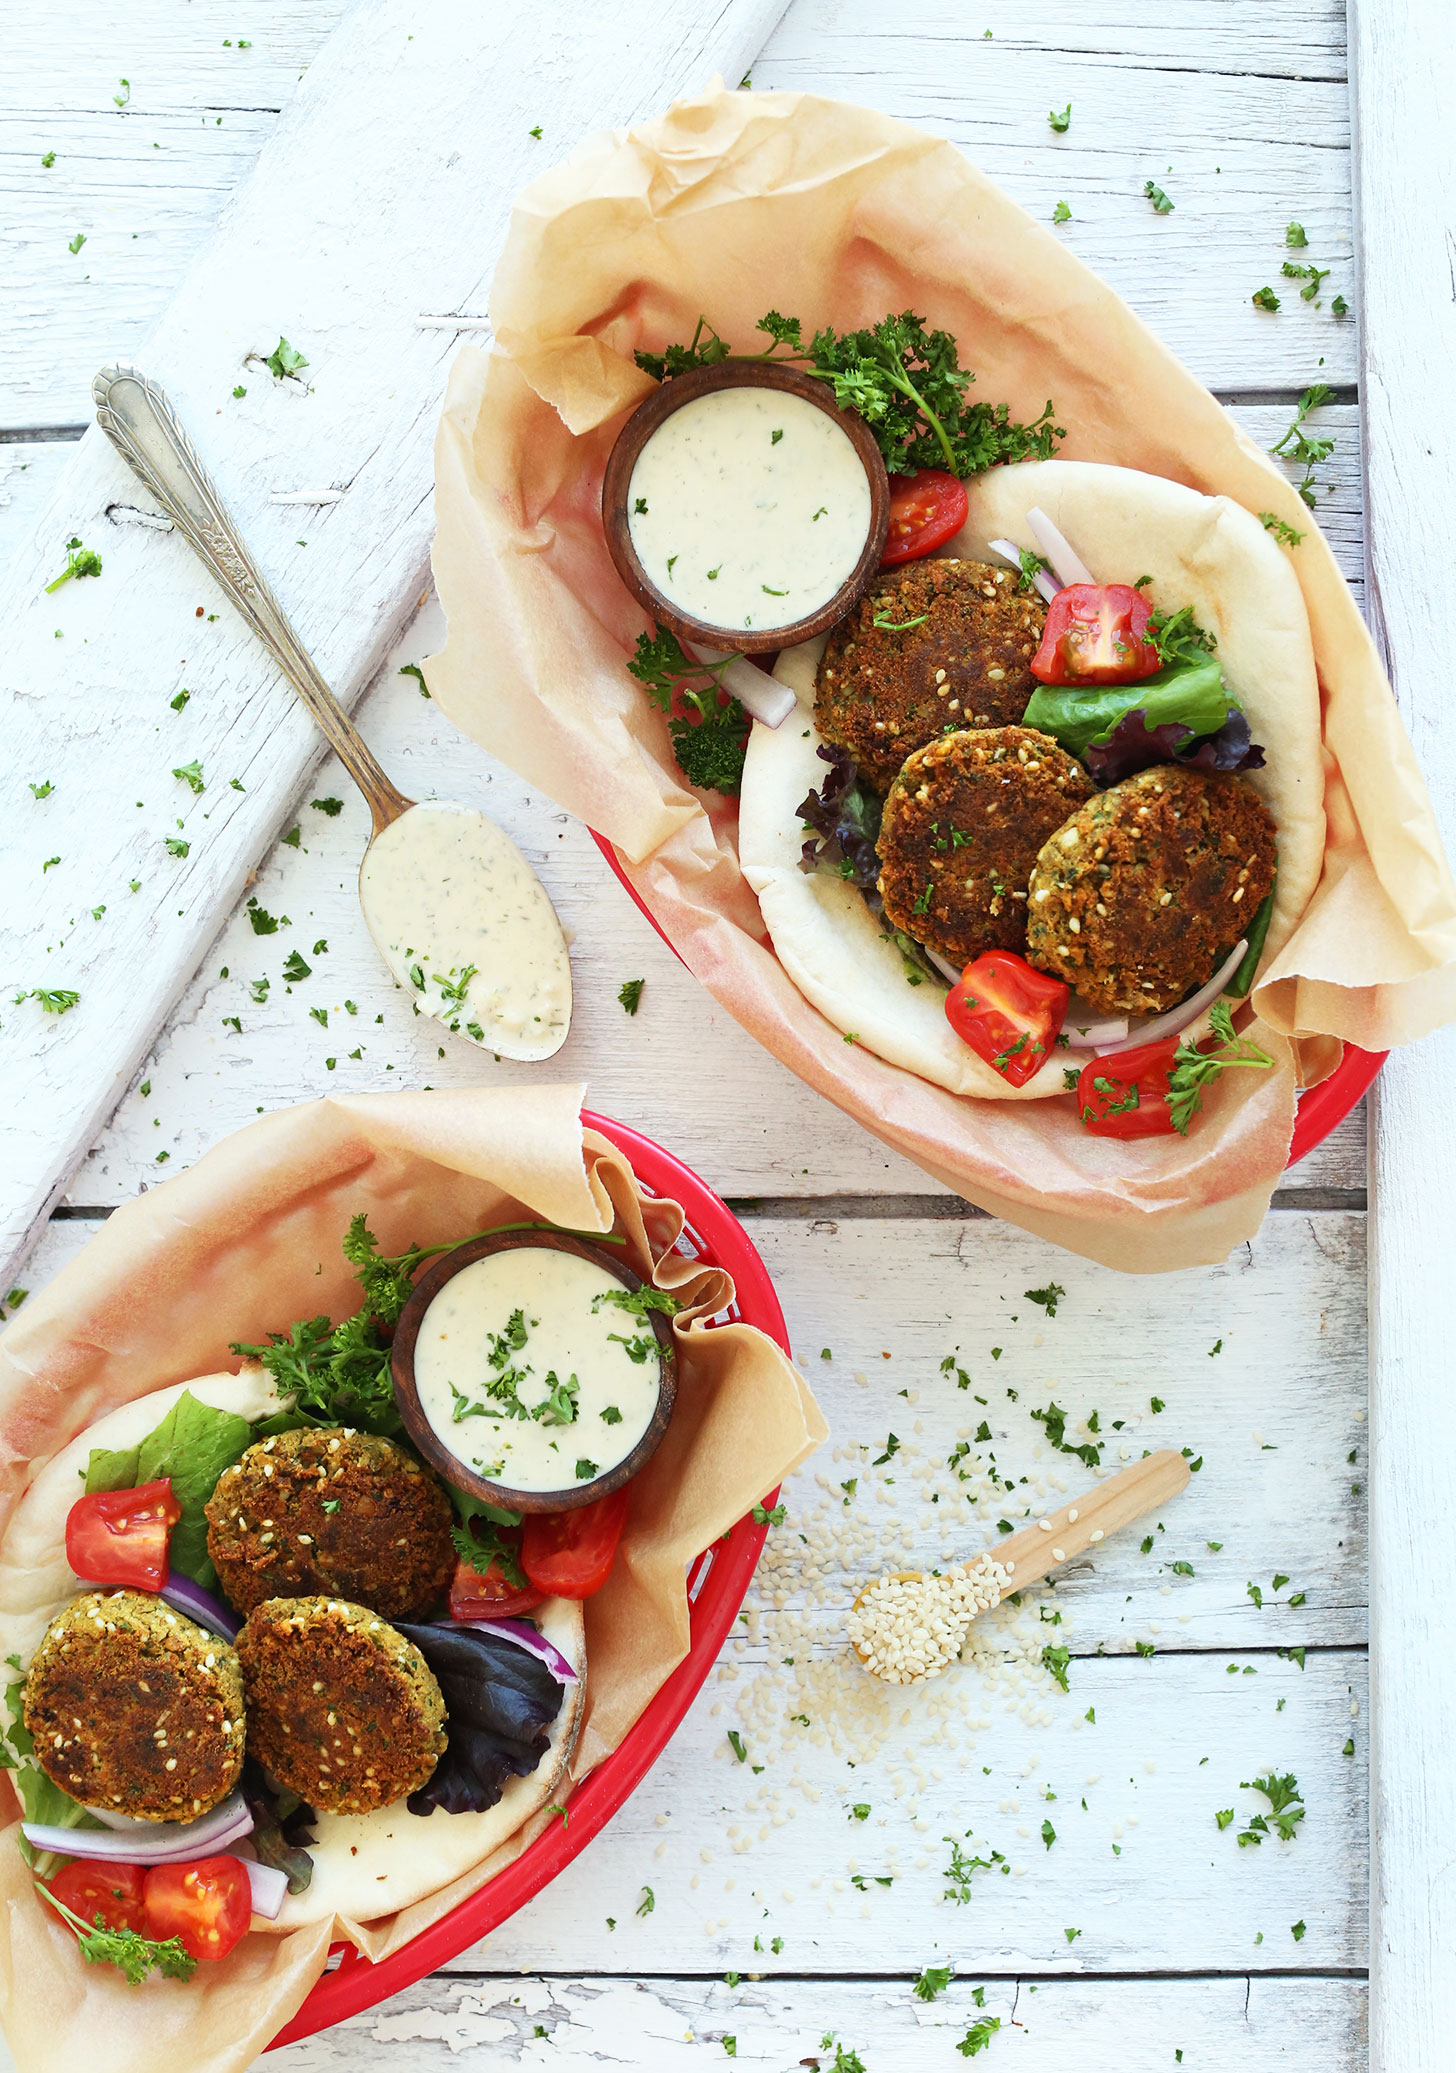 Amazing Simple Vegan Falafel With 10 Ingrents And No Frying Required Healthy